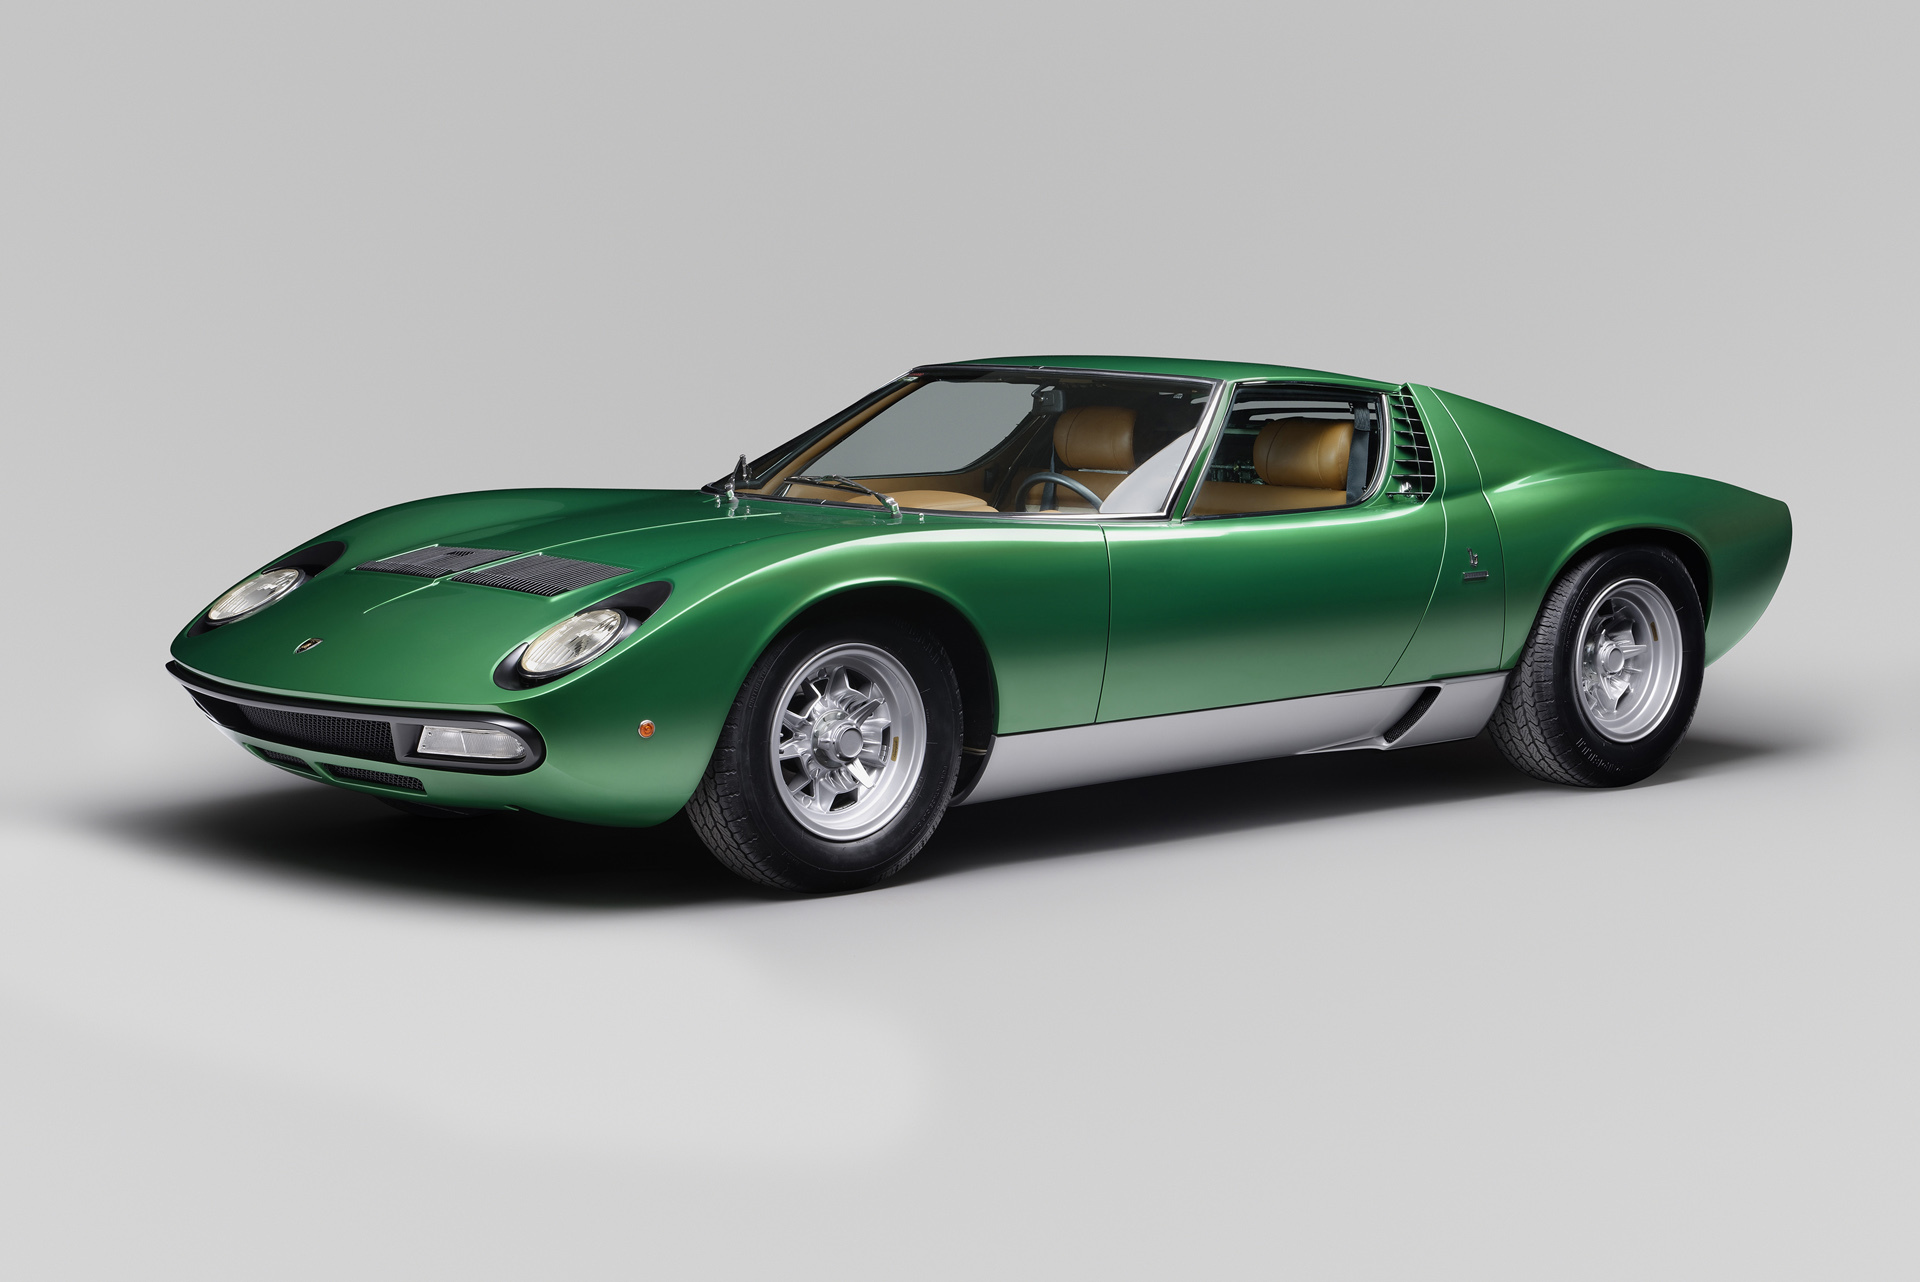 News - 1971 Lamborghini Miura SV - Possibly The Most ...